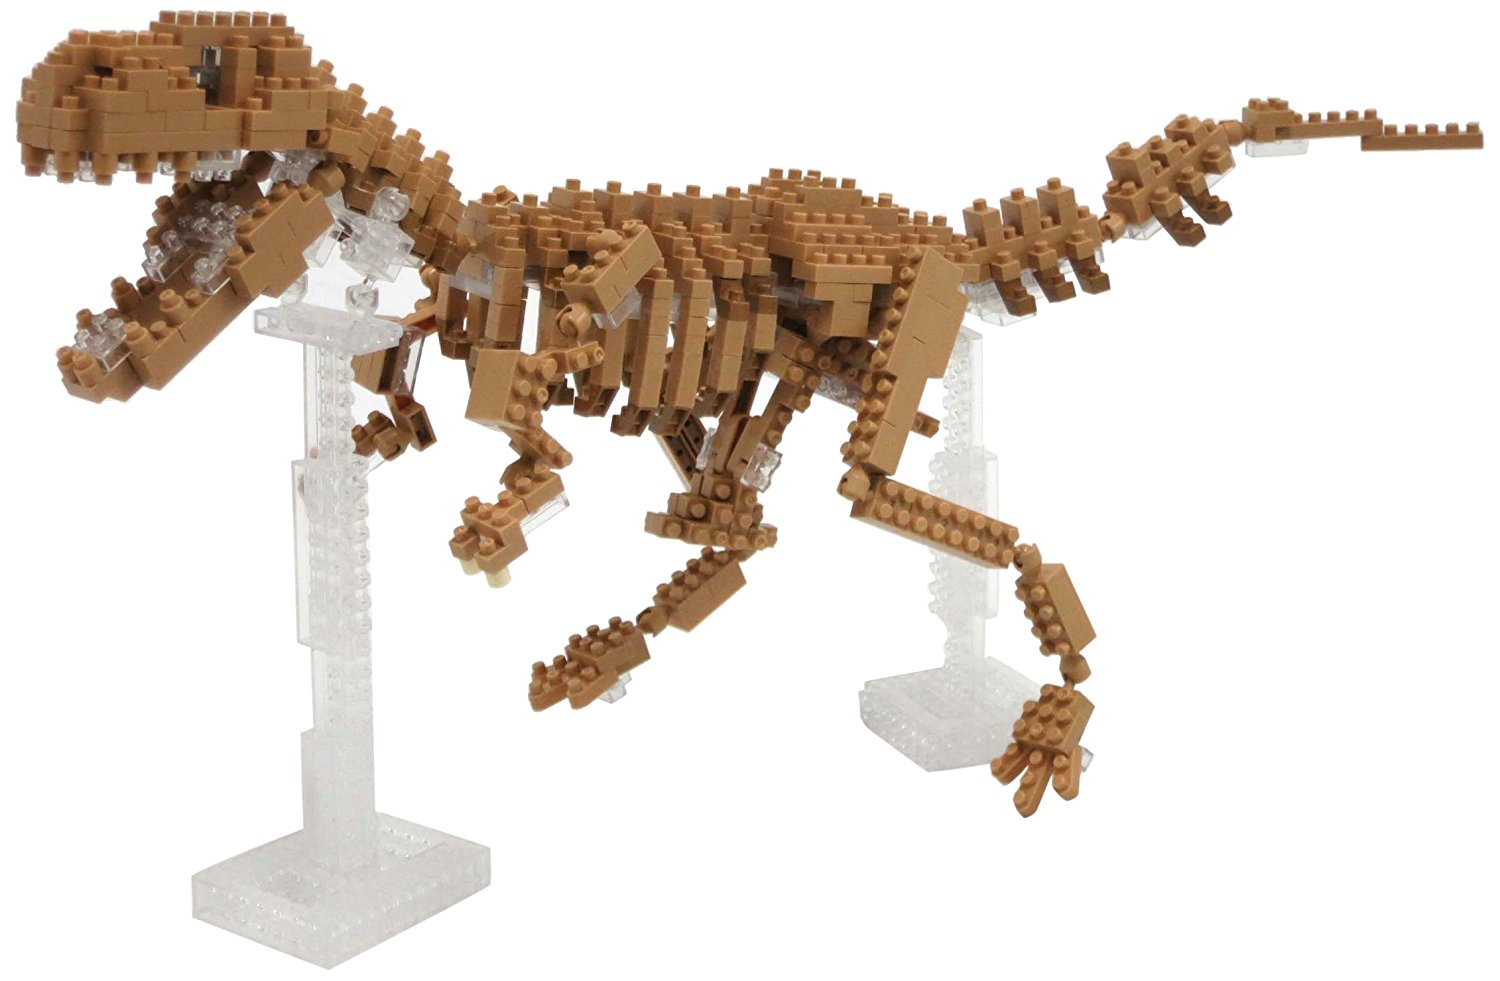 3d Puzzles For Girls, Over 600 Pieces Nanoblock T-rex Skeleton Jigsaw Puzzle 3d by BY-NANOBLOCK